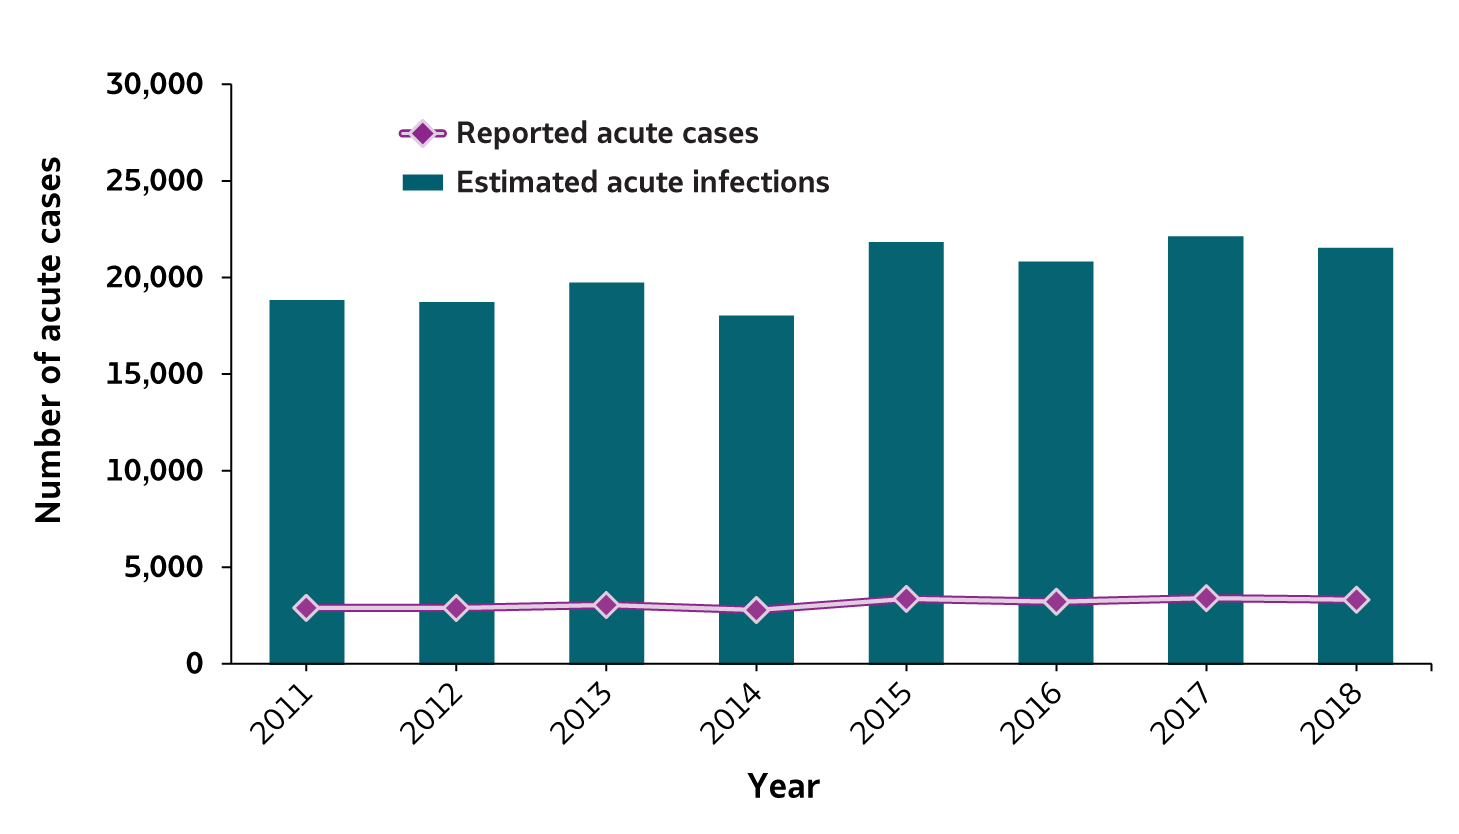 Figure 2.1.  The number of reported acute hepatitis B cases and estimated acute hepatitis B infection generally remained stable from 2011 through 2018.  In 2018 there were 3,322 reported cases of acute hepatitis B and 21,600 estimated acute hepatitis B infections.